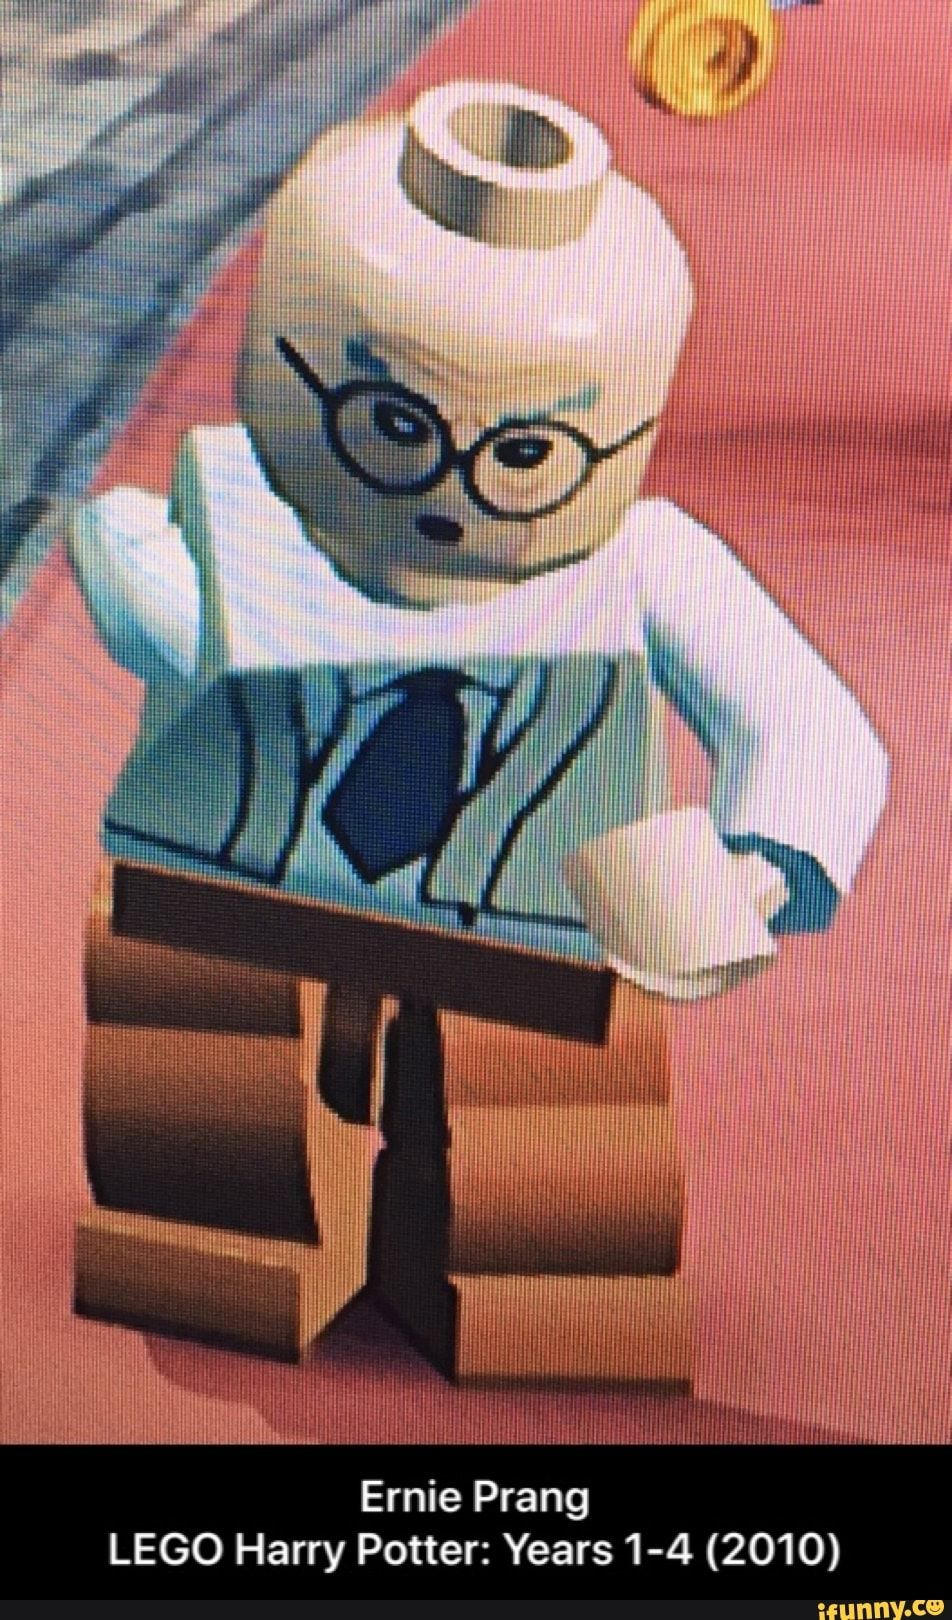 Ernie Prang Lego Harry Potter Years 1 4 2010 Ifunny Lego Harry Potter Harry Potter Memes Hilarious Harry Potter Years